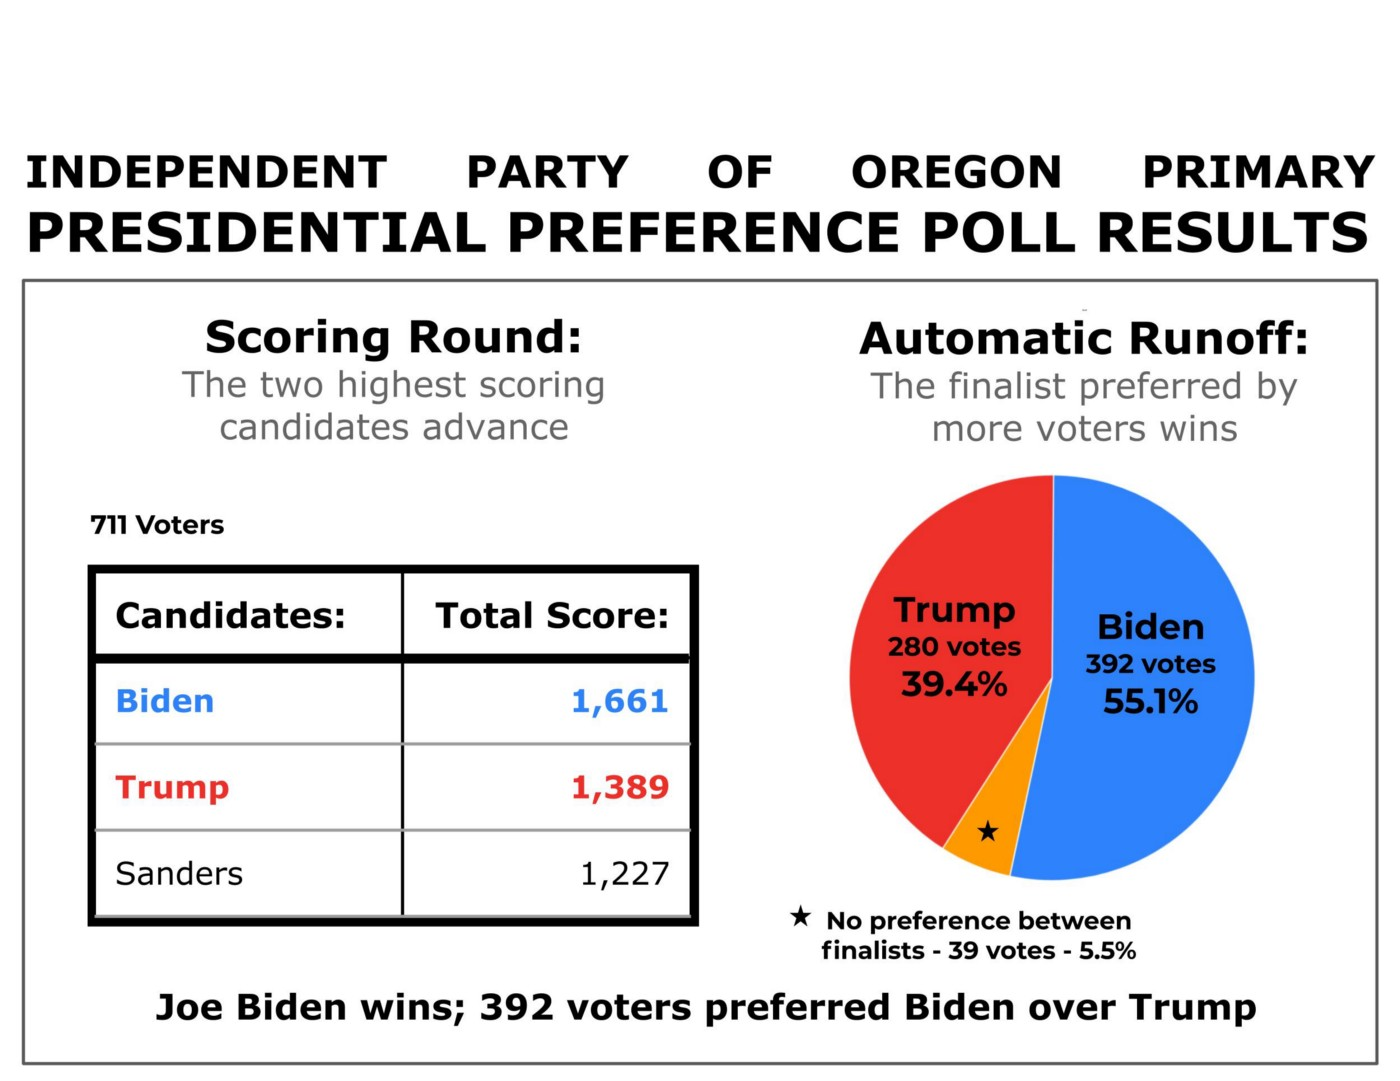 STAR Voting Presidential Preference Poll results: Biden and Trump advance to runoff. Biden wins with 55.1% of the vote.